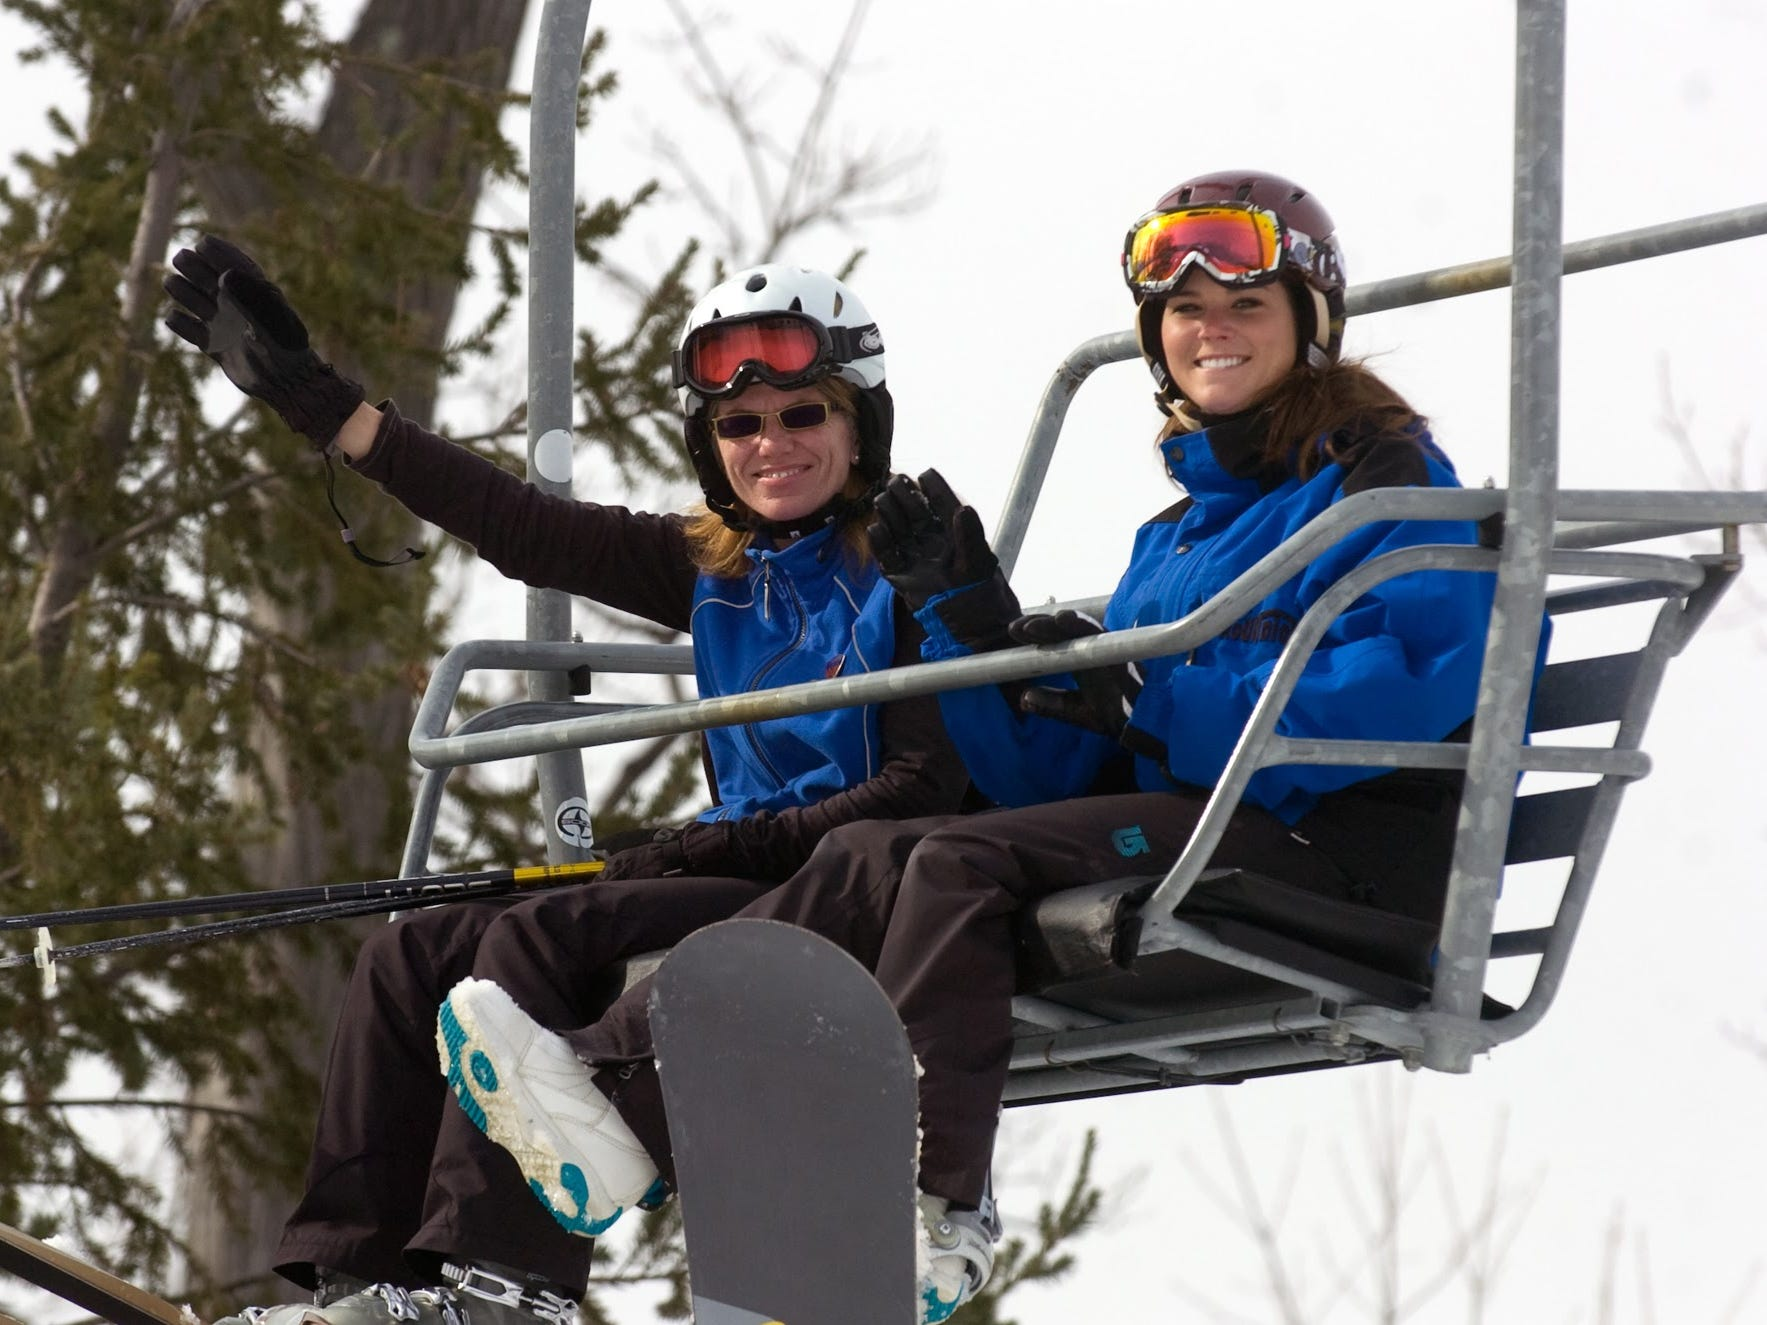 Rose Gavin, left, and Erica Culbert ride up the lift at Roundtop Mountain Resort March 11, 2011.